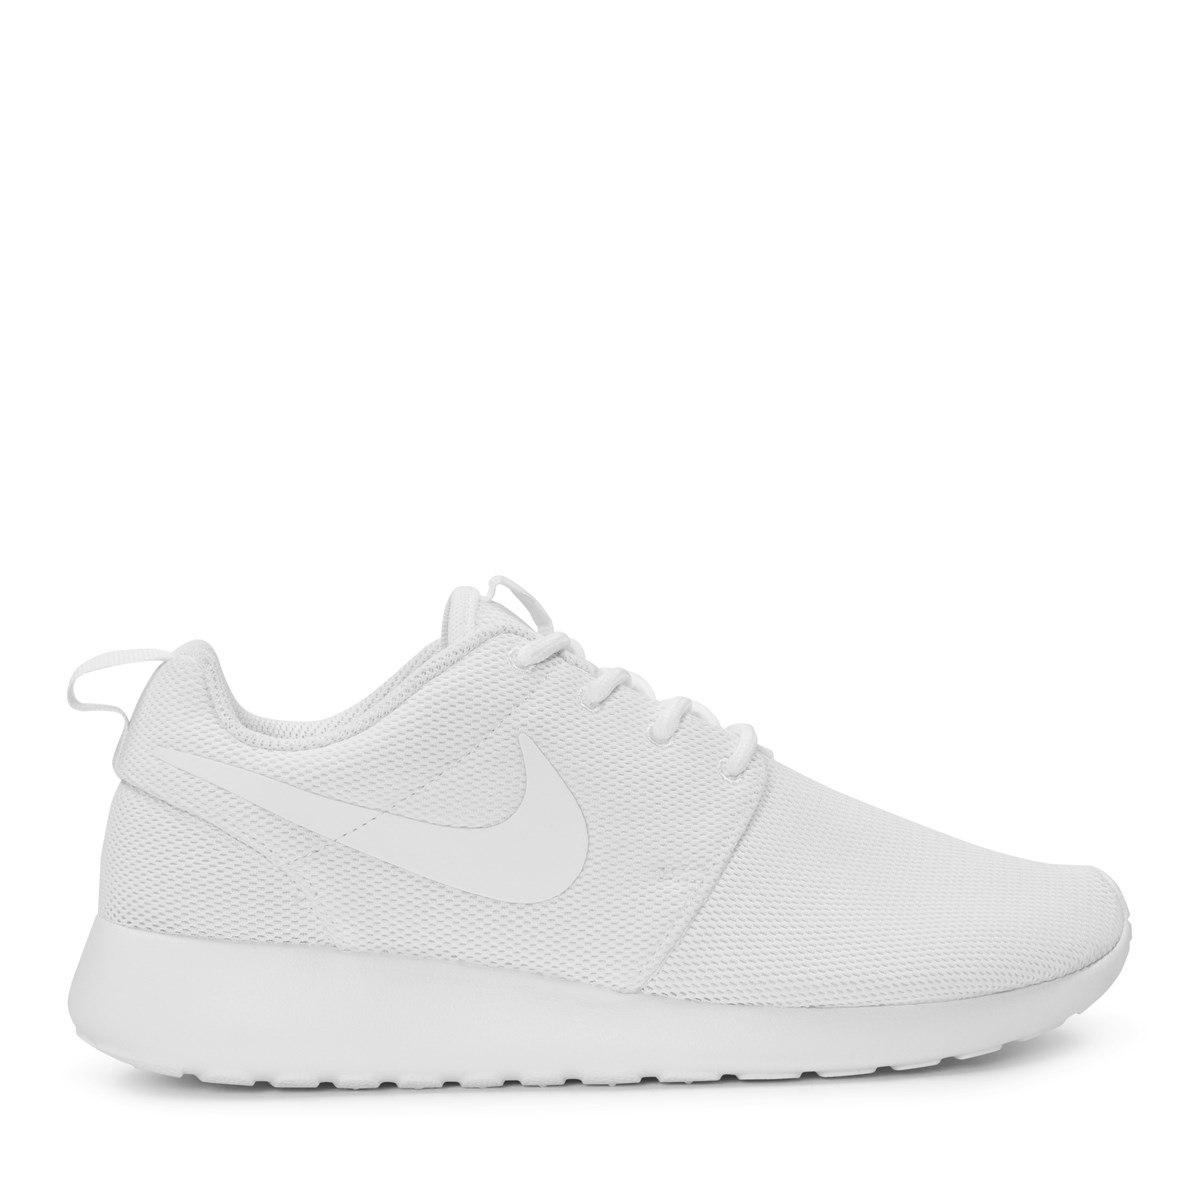 Women's Roshe One Run Sneakers in White